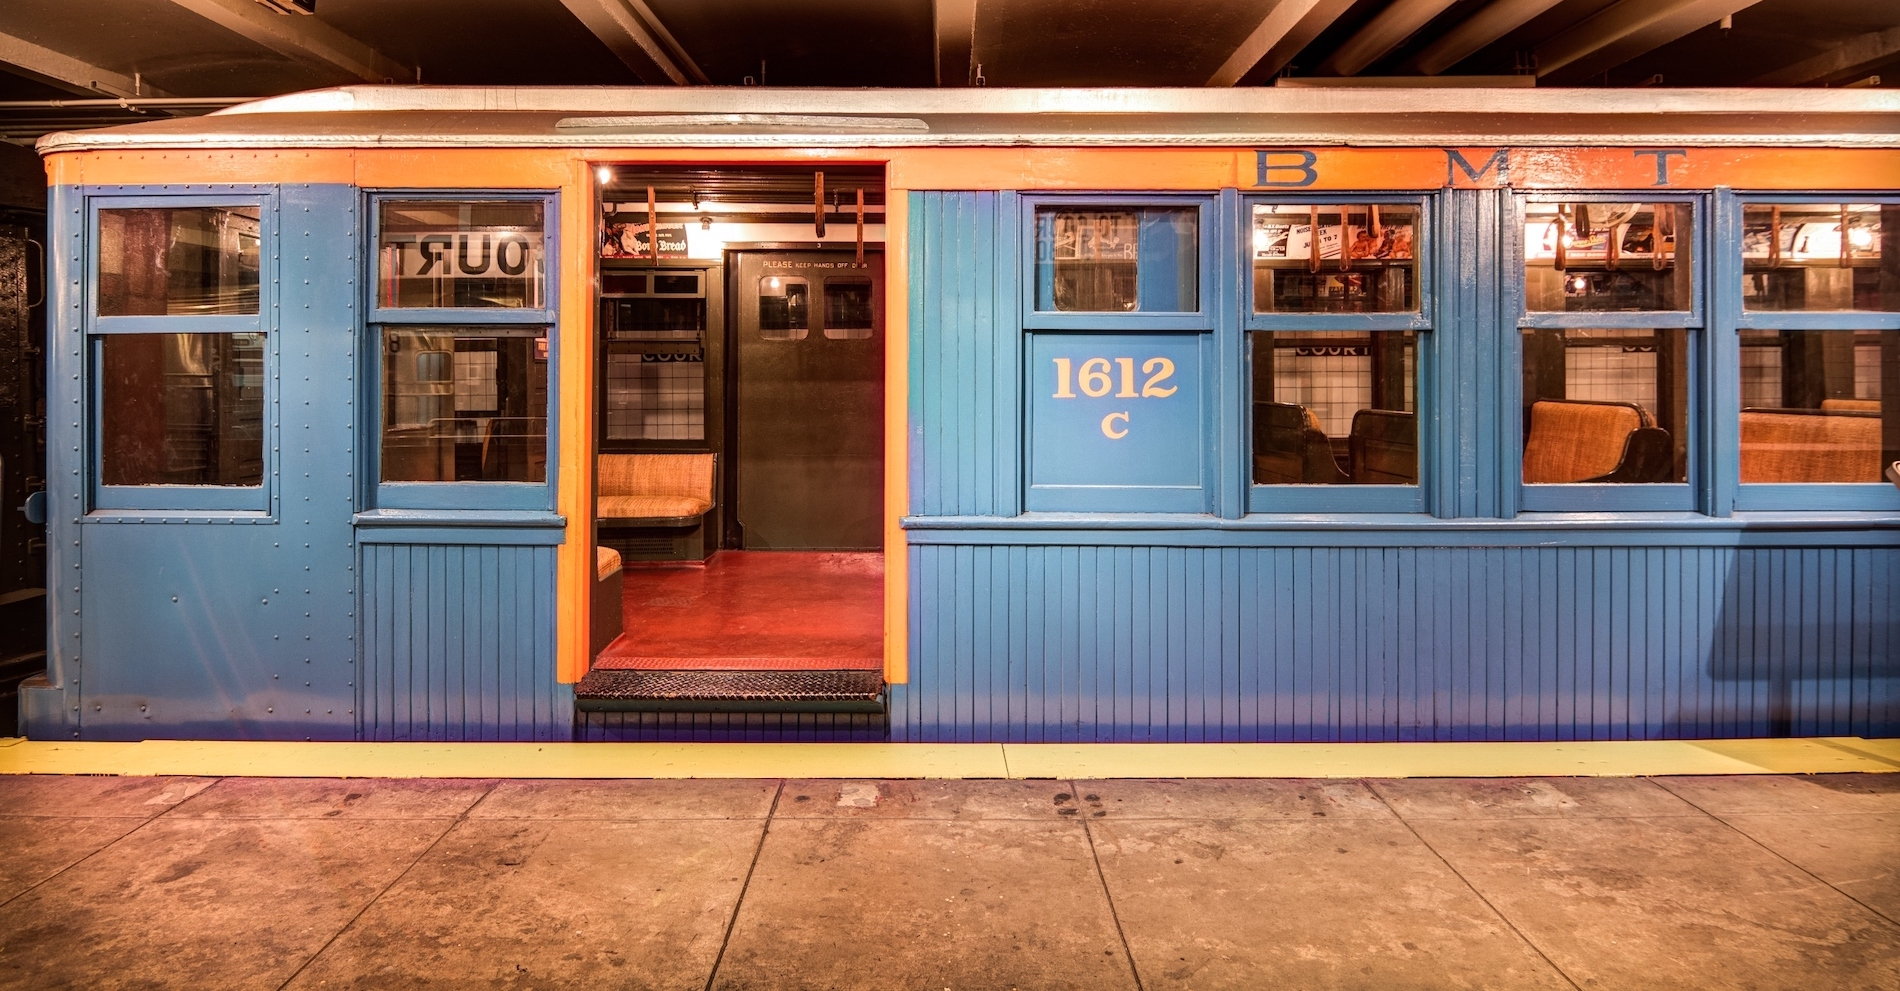 BMT World's Fair Car 1612C on view at the New York Transit Museum in Downtown Brooklyn. The train car is wooden and painted in a blue and orange color scheme.